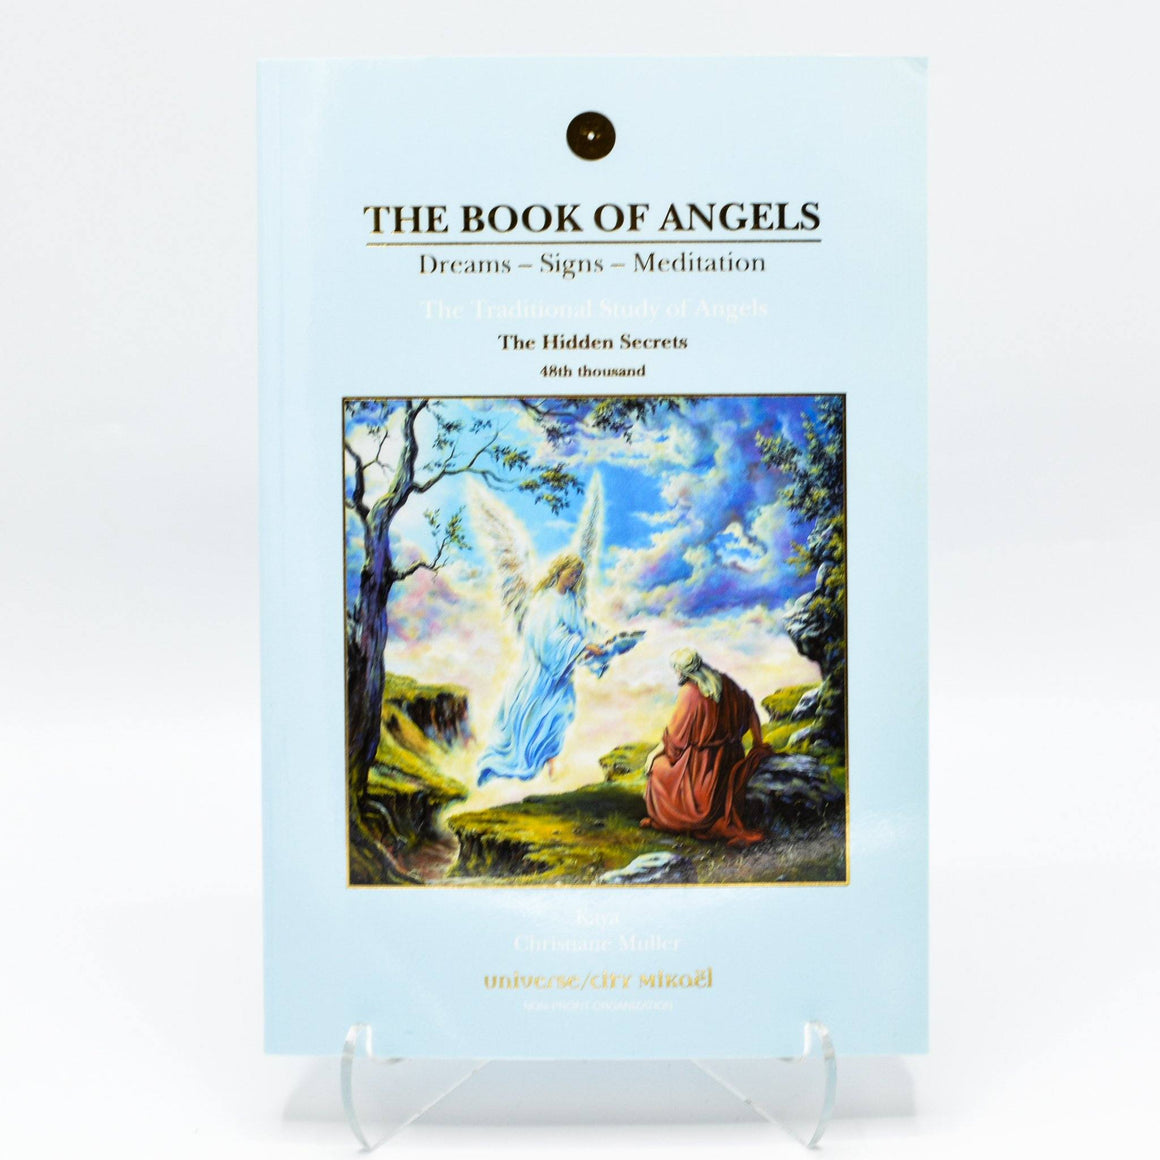 The Book of Angels: The Hidden Secrets